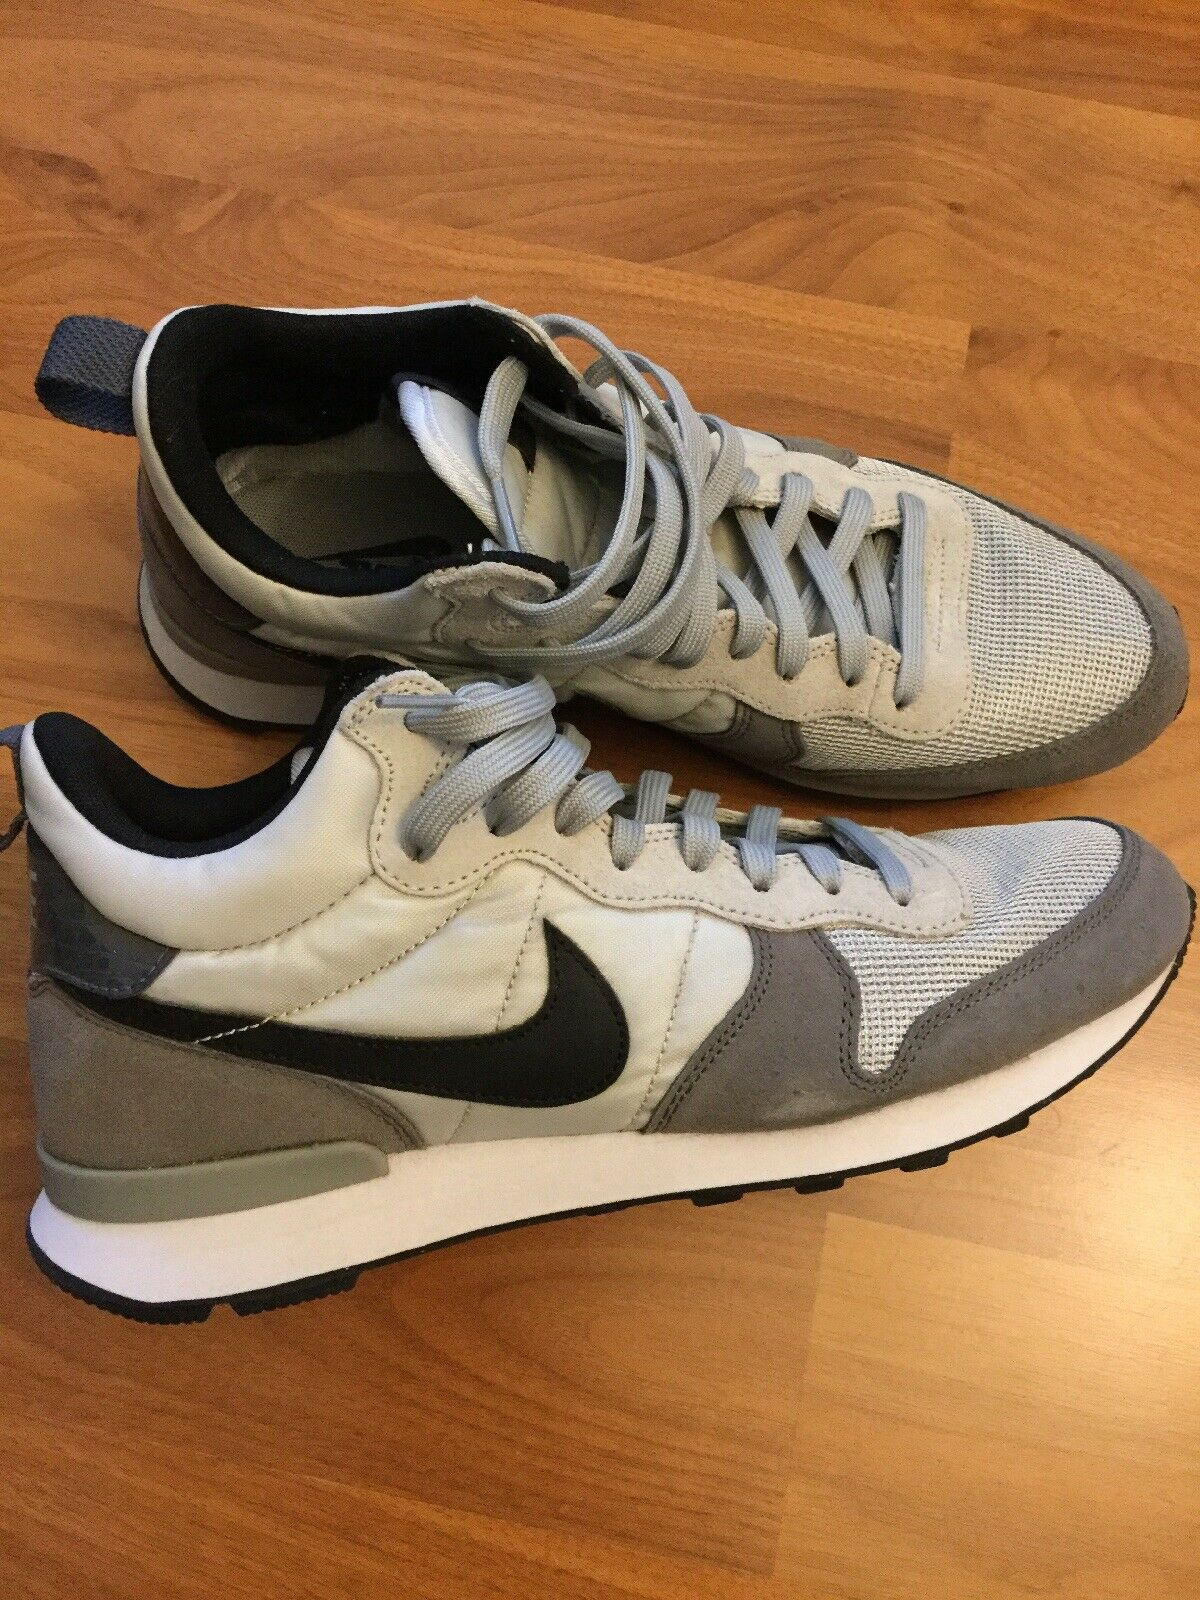 Nike Internationalist Mid shoes Size 9.5US PRACTICALLY NEW  PRICE DROP